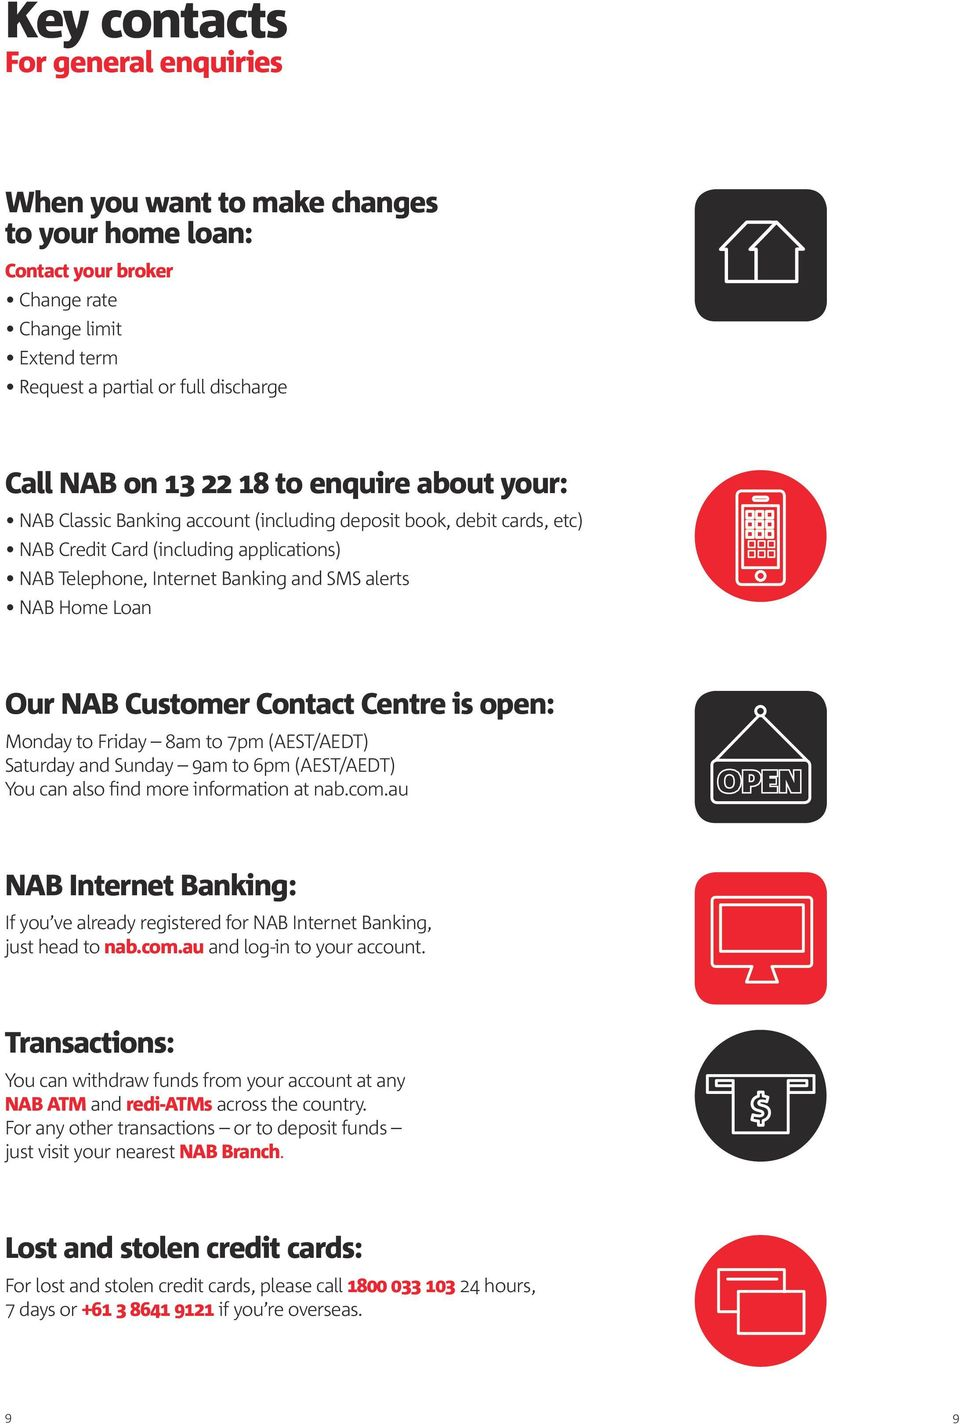 NAB Customer Contact Centre is open: Monday to Friday 8am to 7pm (AEST/AEDT) Saturday and Sunday 9am to 6pm (AEST/AEDT) You can also find more information at nab.com.